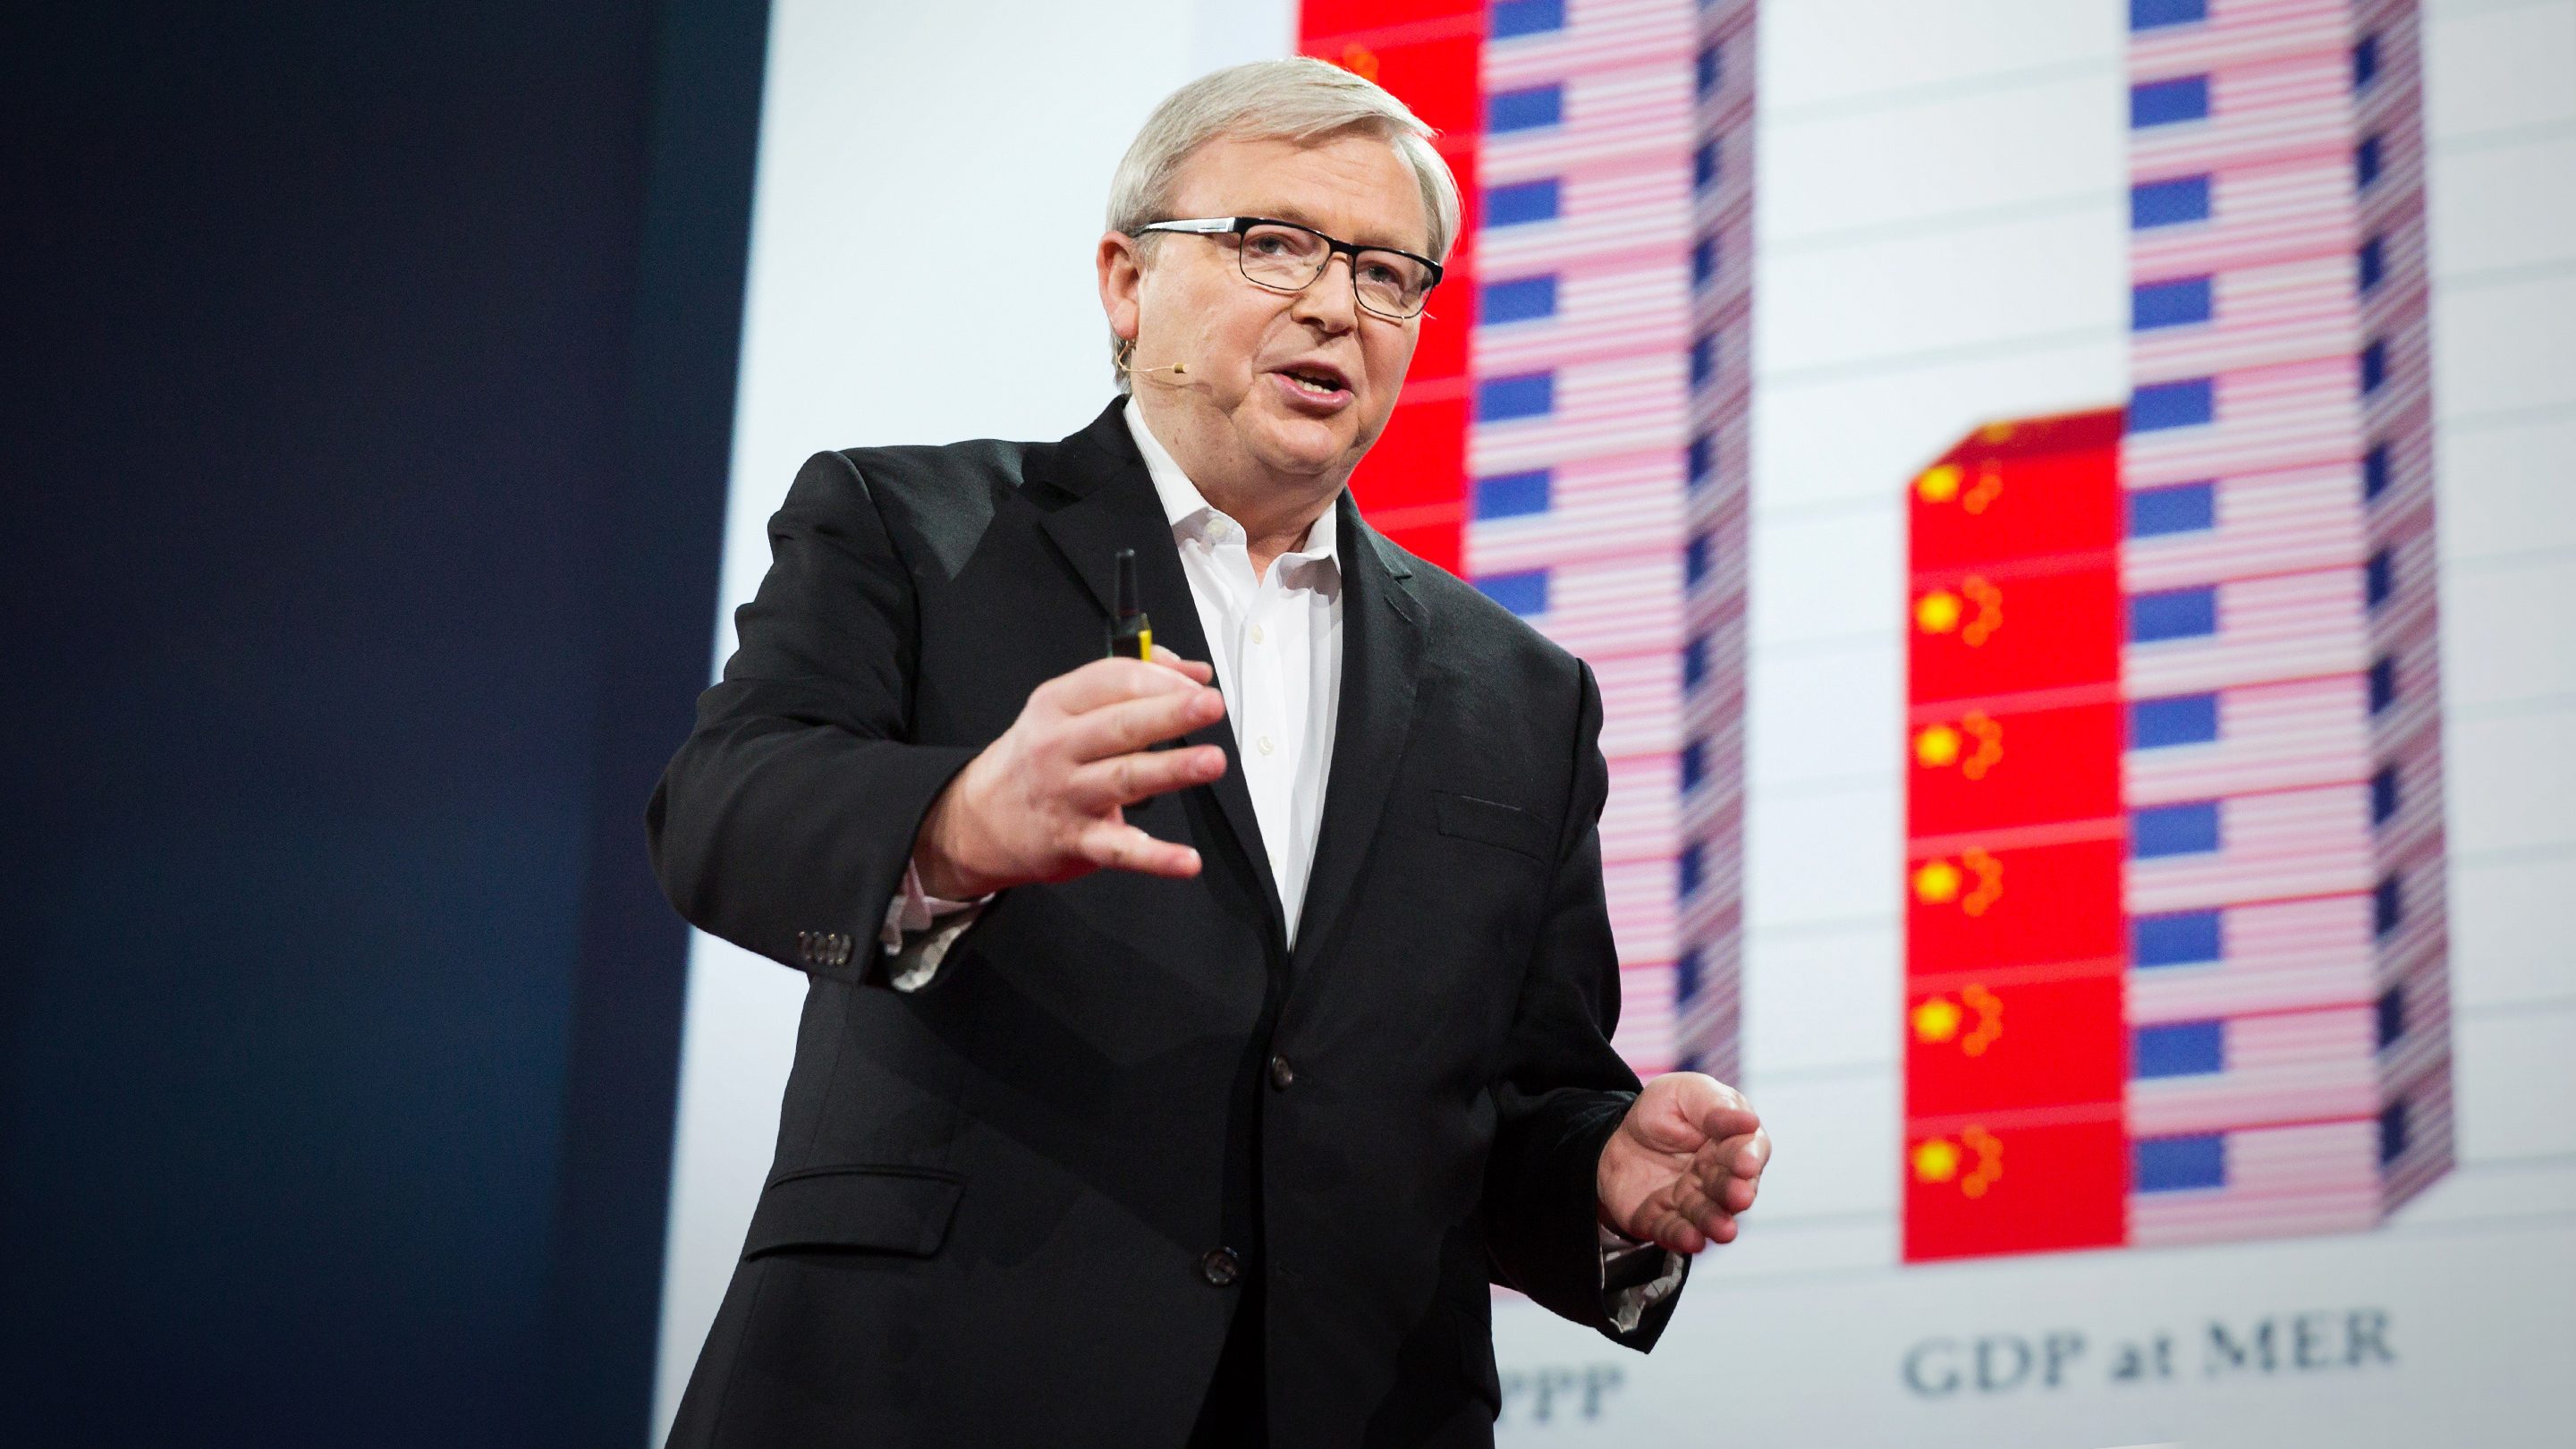 Kevin Rudd: Are China and the US doomed to conflict? thumbnail